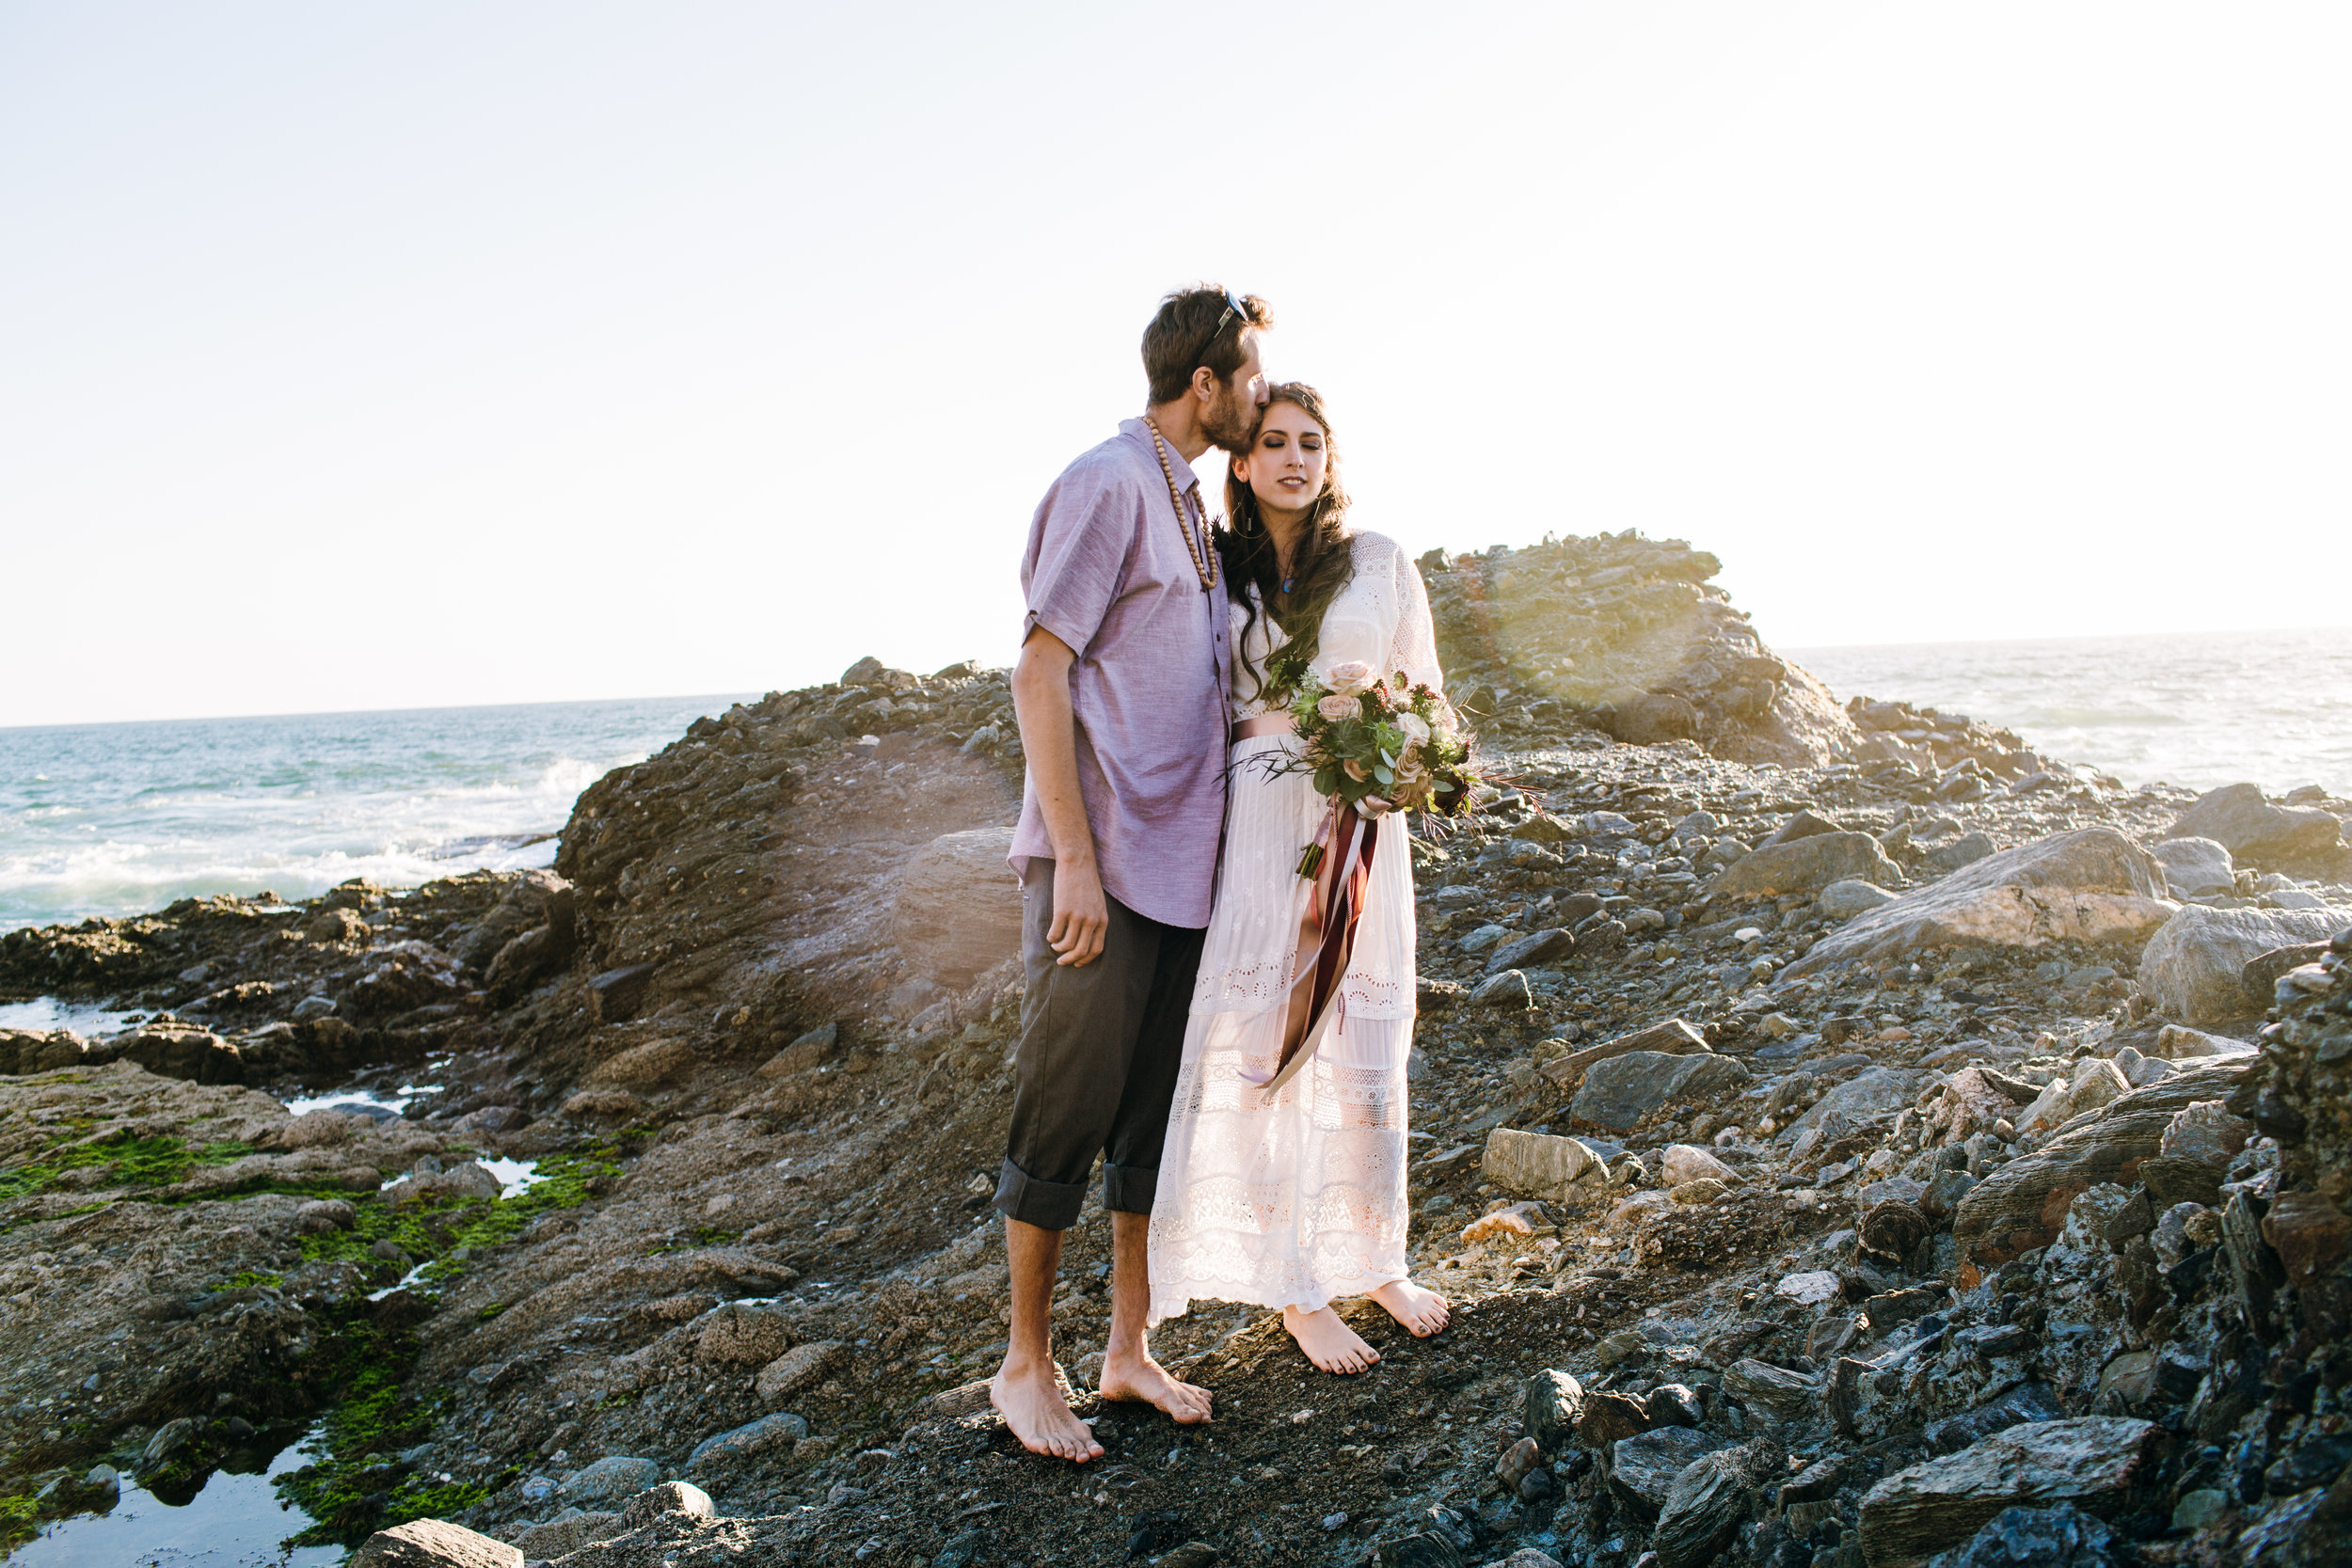 KaraNixonWeddings-LagunaBeach-Tablerock-Elopement-30.jpg